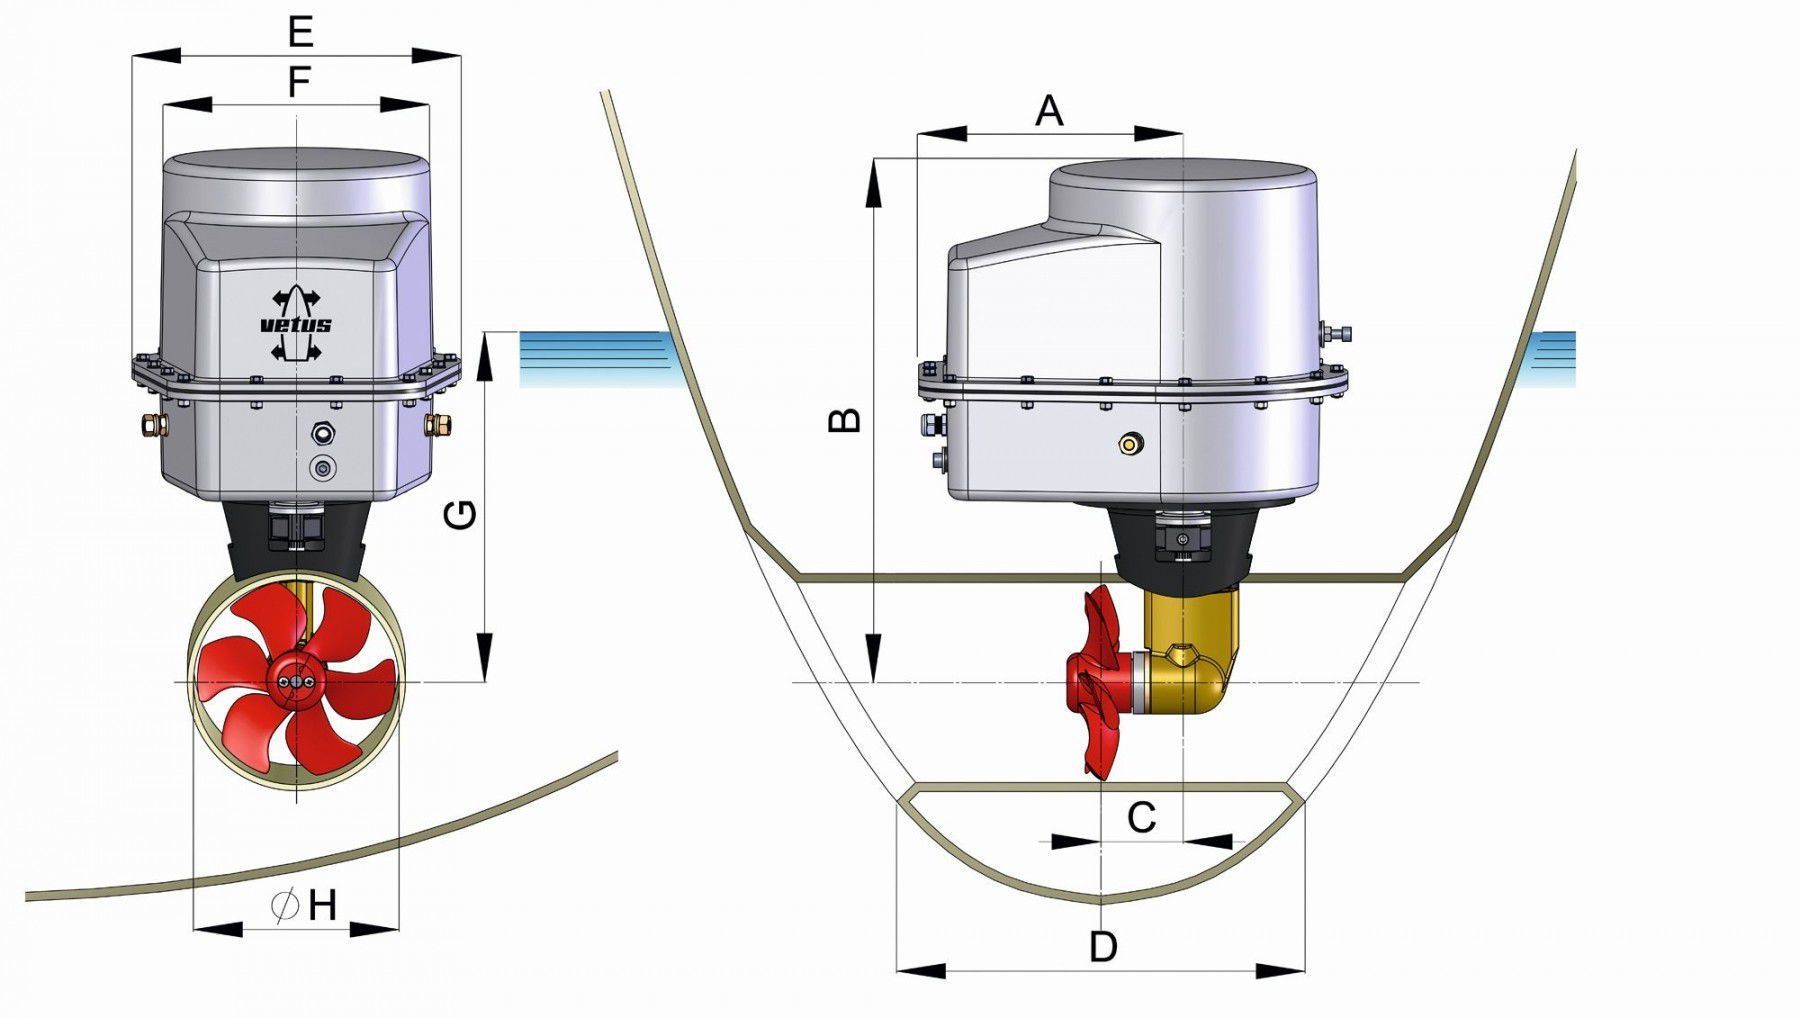 ... bow thruster / for boats / electric